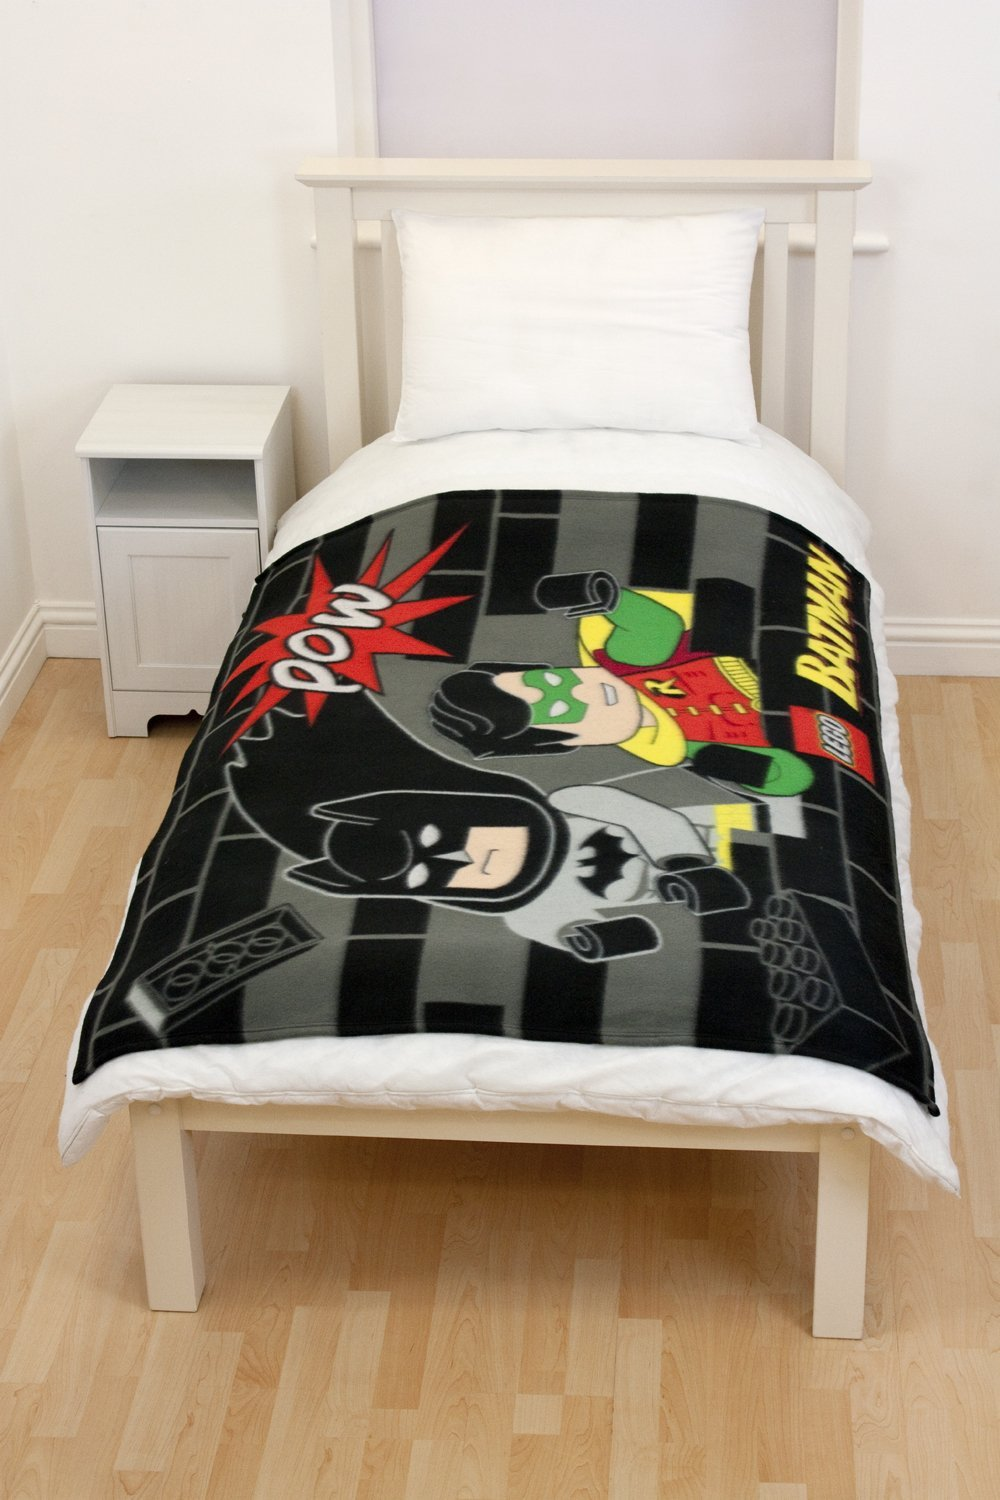 Lego Throw Pillow And Blanket Set : Buy Batman Bedding Sets - Personalized Bed Sheets and Duvet Cover Set - dashingamrit